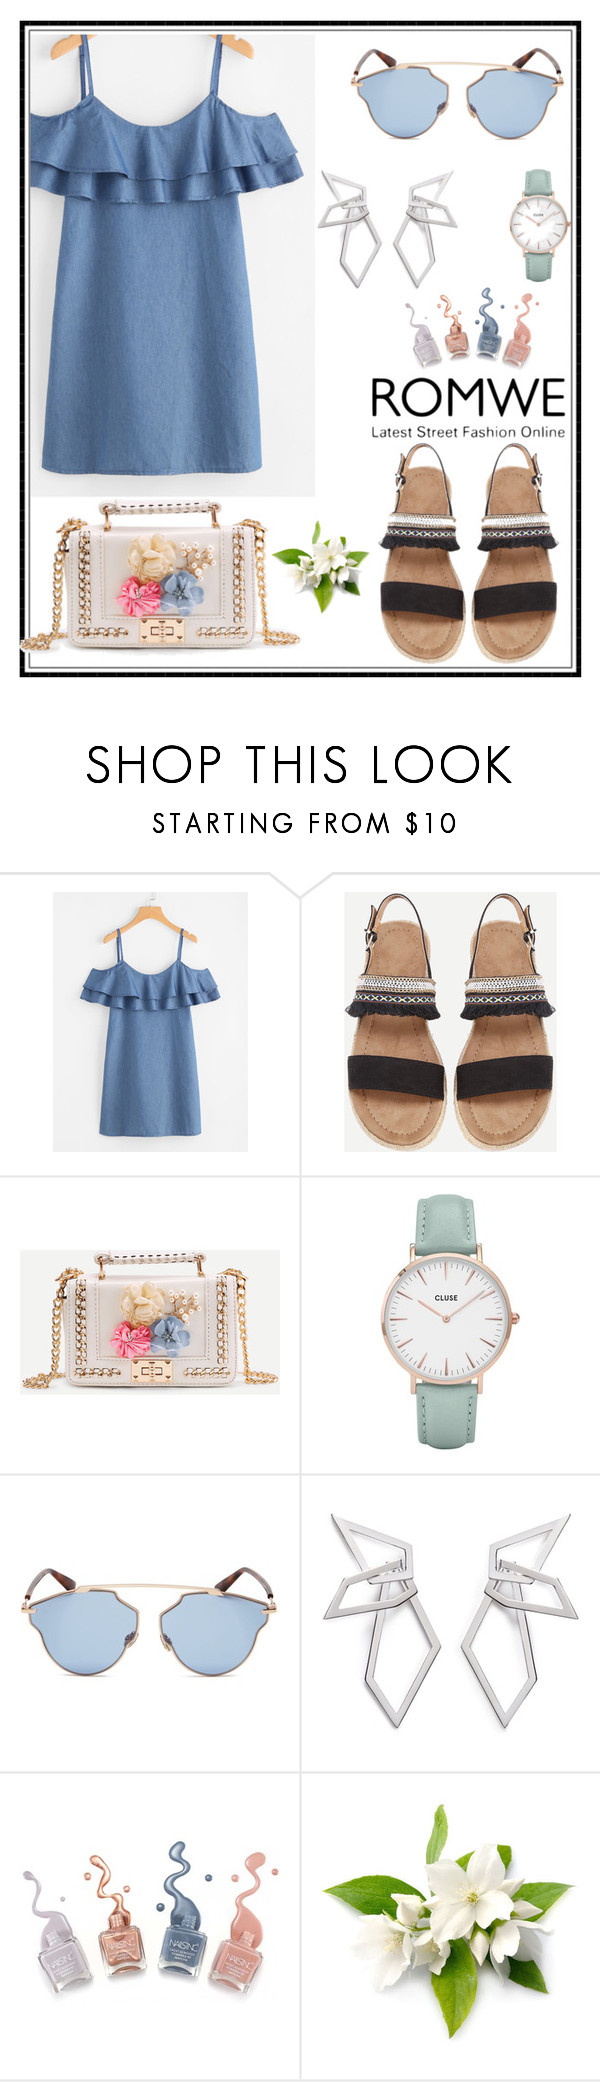 """""""Romwe 1"""" by amra-f ❤ liked on Polyvore featuring CLUSE, Christian Dior and W. Britt"""